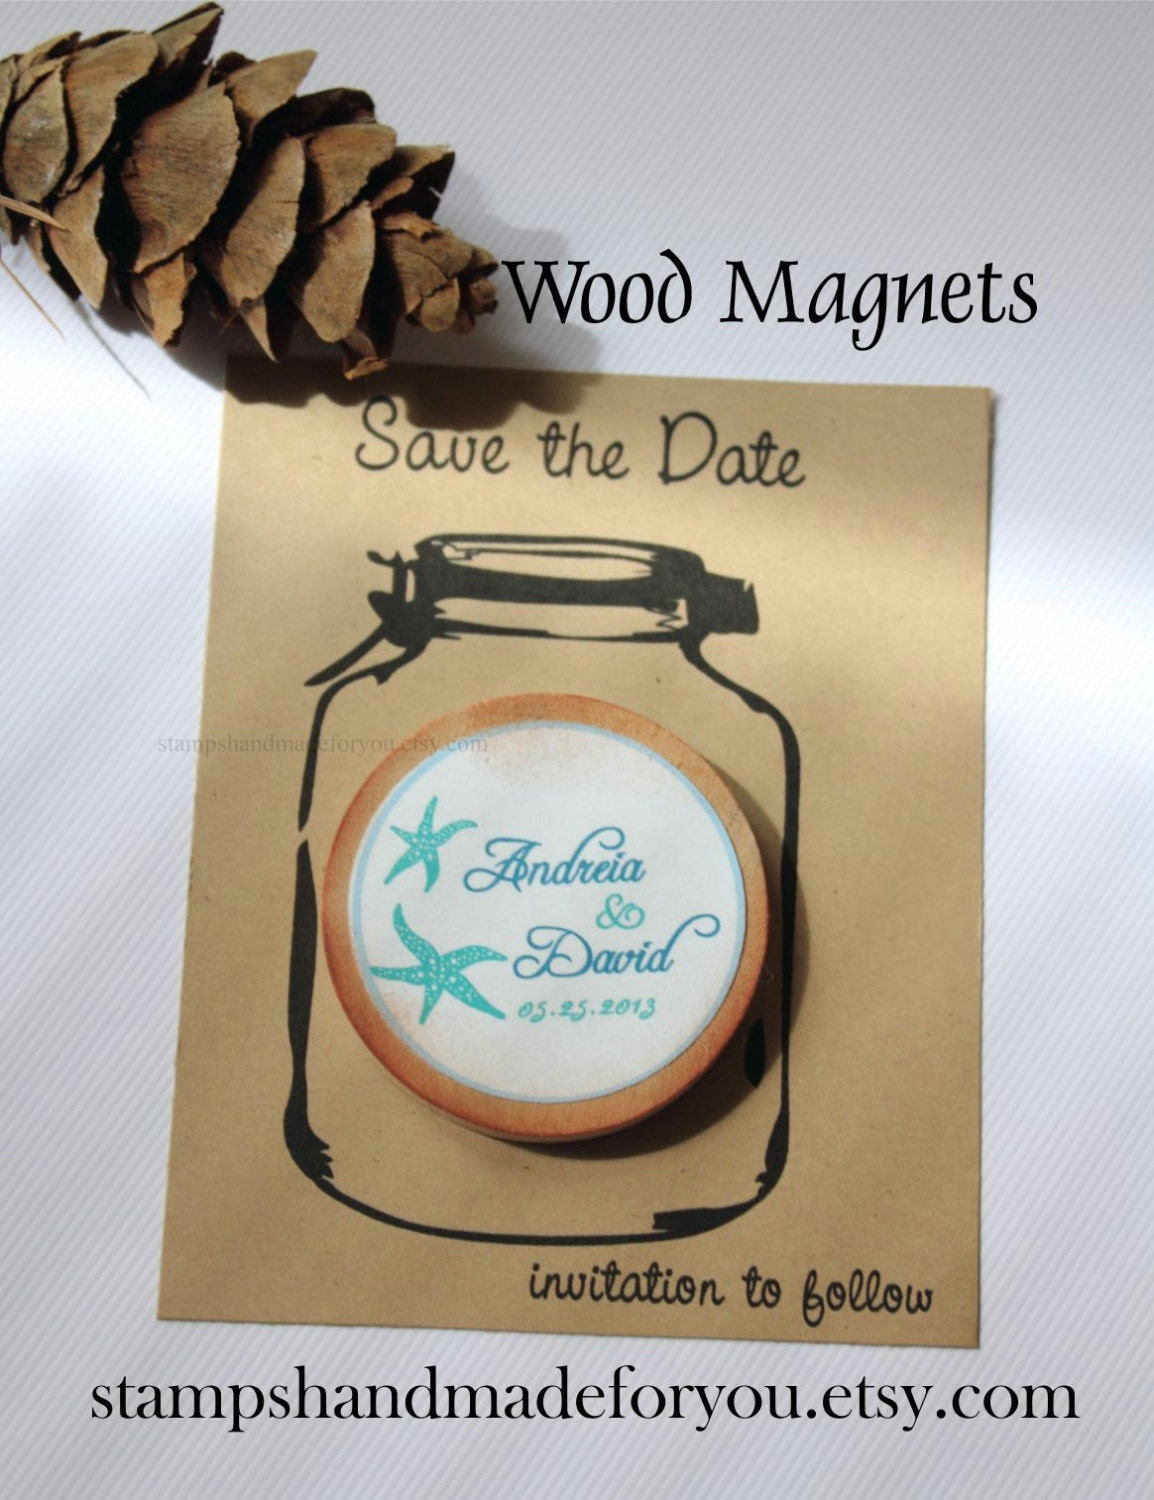 Save the dates magnets in Brisbane